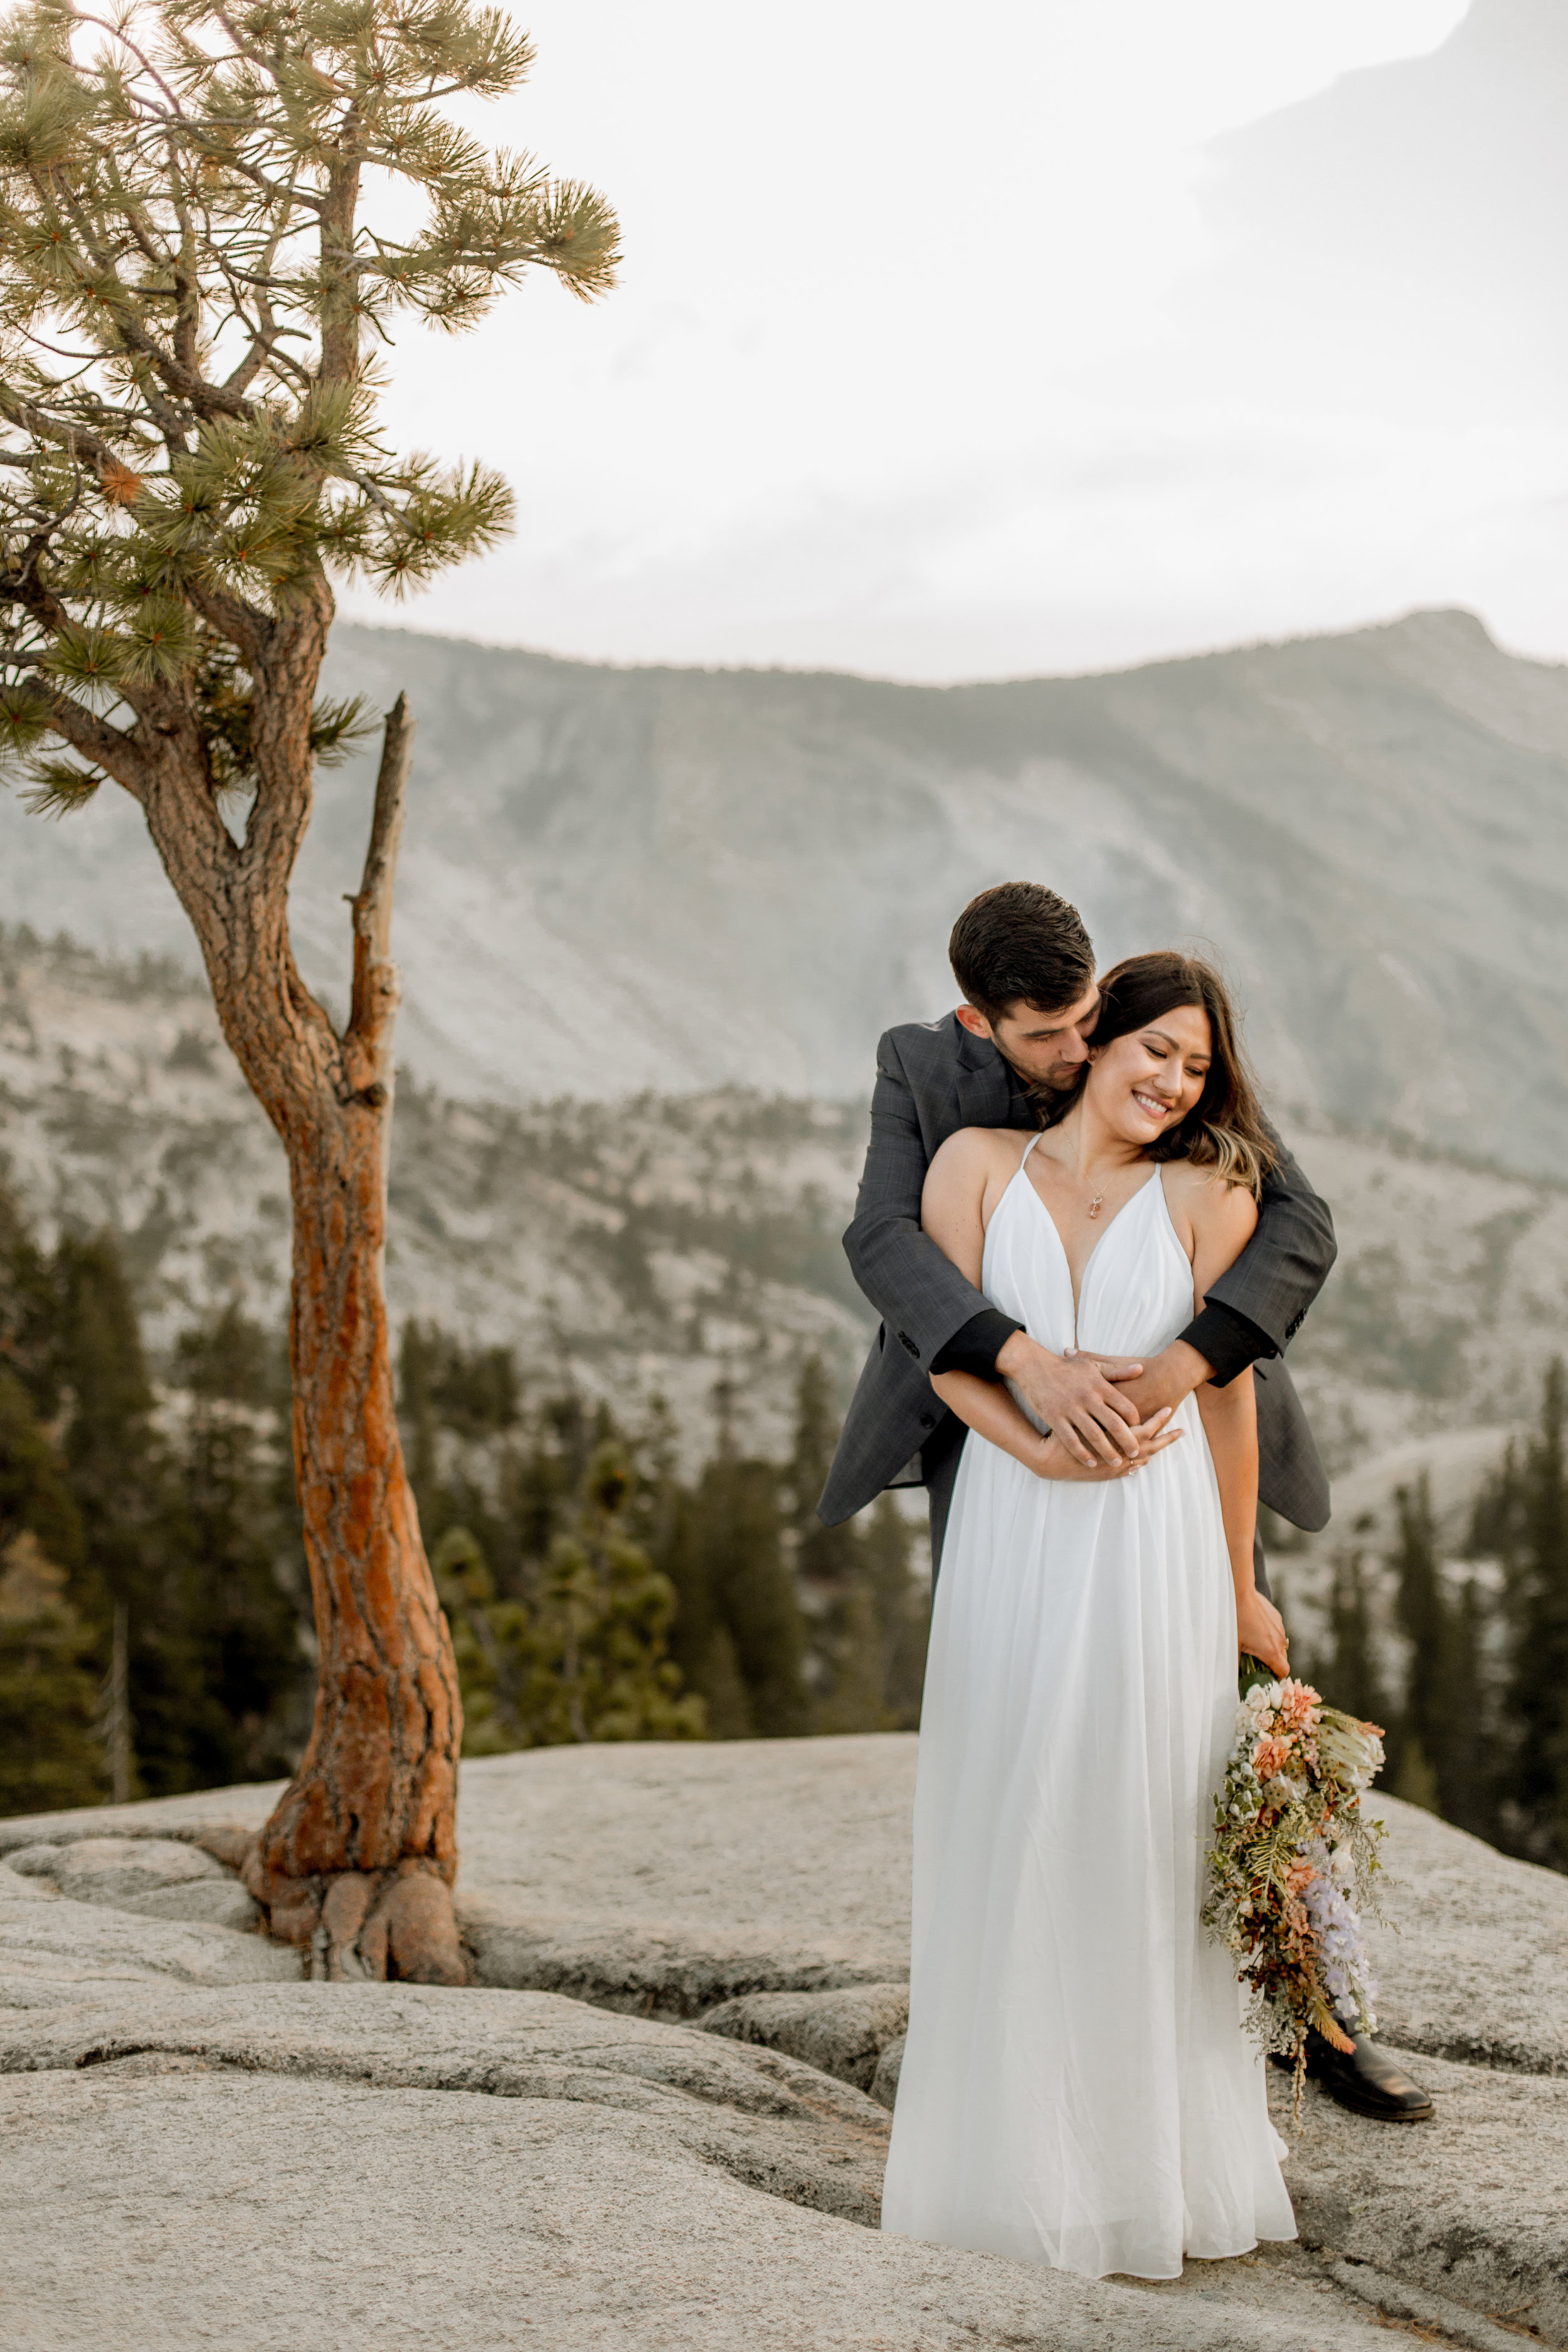 nicole-daacke-photography-yosemite-national-park-fall-elopement-adventurous-free-spirit-boho-bohemian-elopement-olmsted-point-yosemite-california-elope-adventure-elopement-photographer-36.jpg